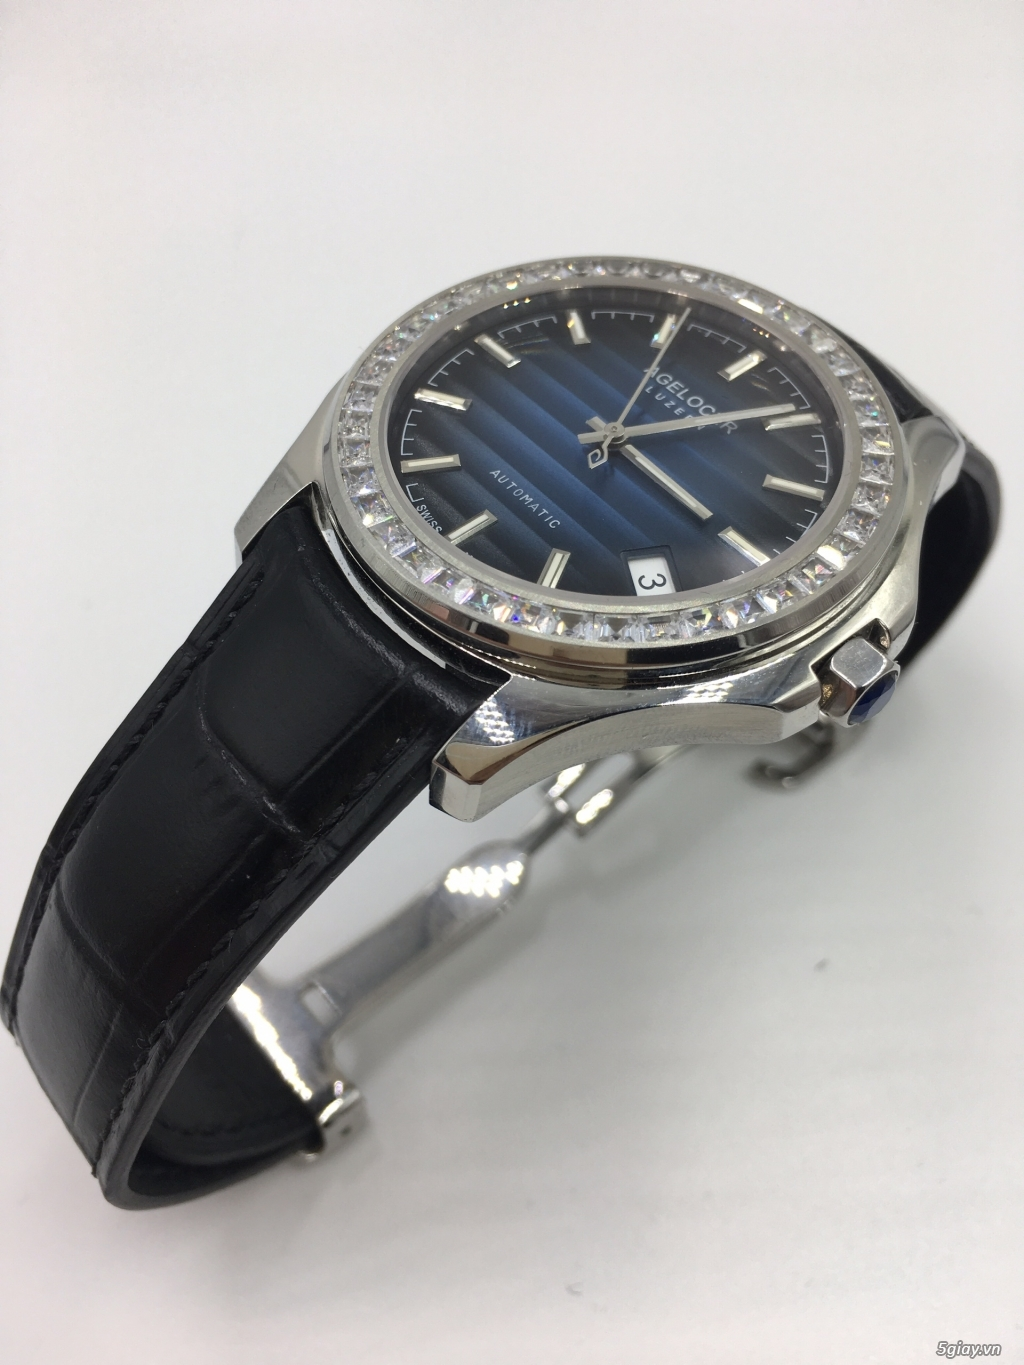 Muốn bán hoặc giao lưu đồng hồ Agelocer automatic - 2